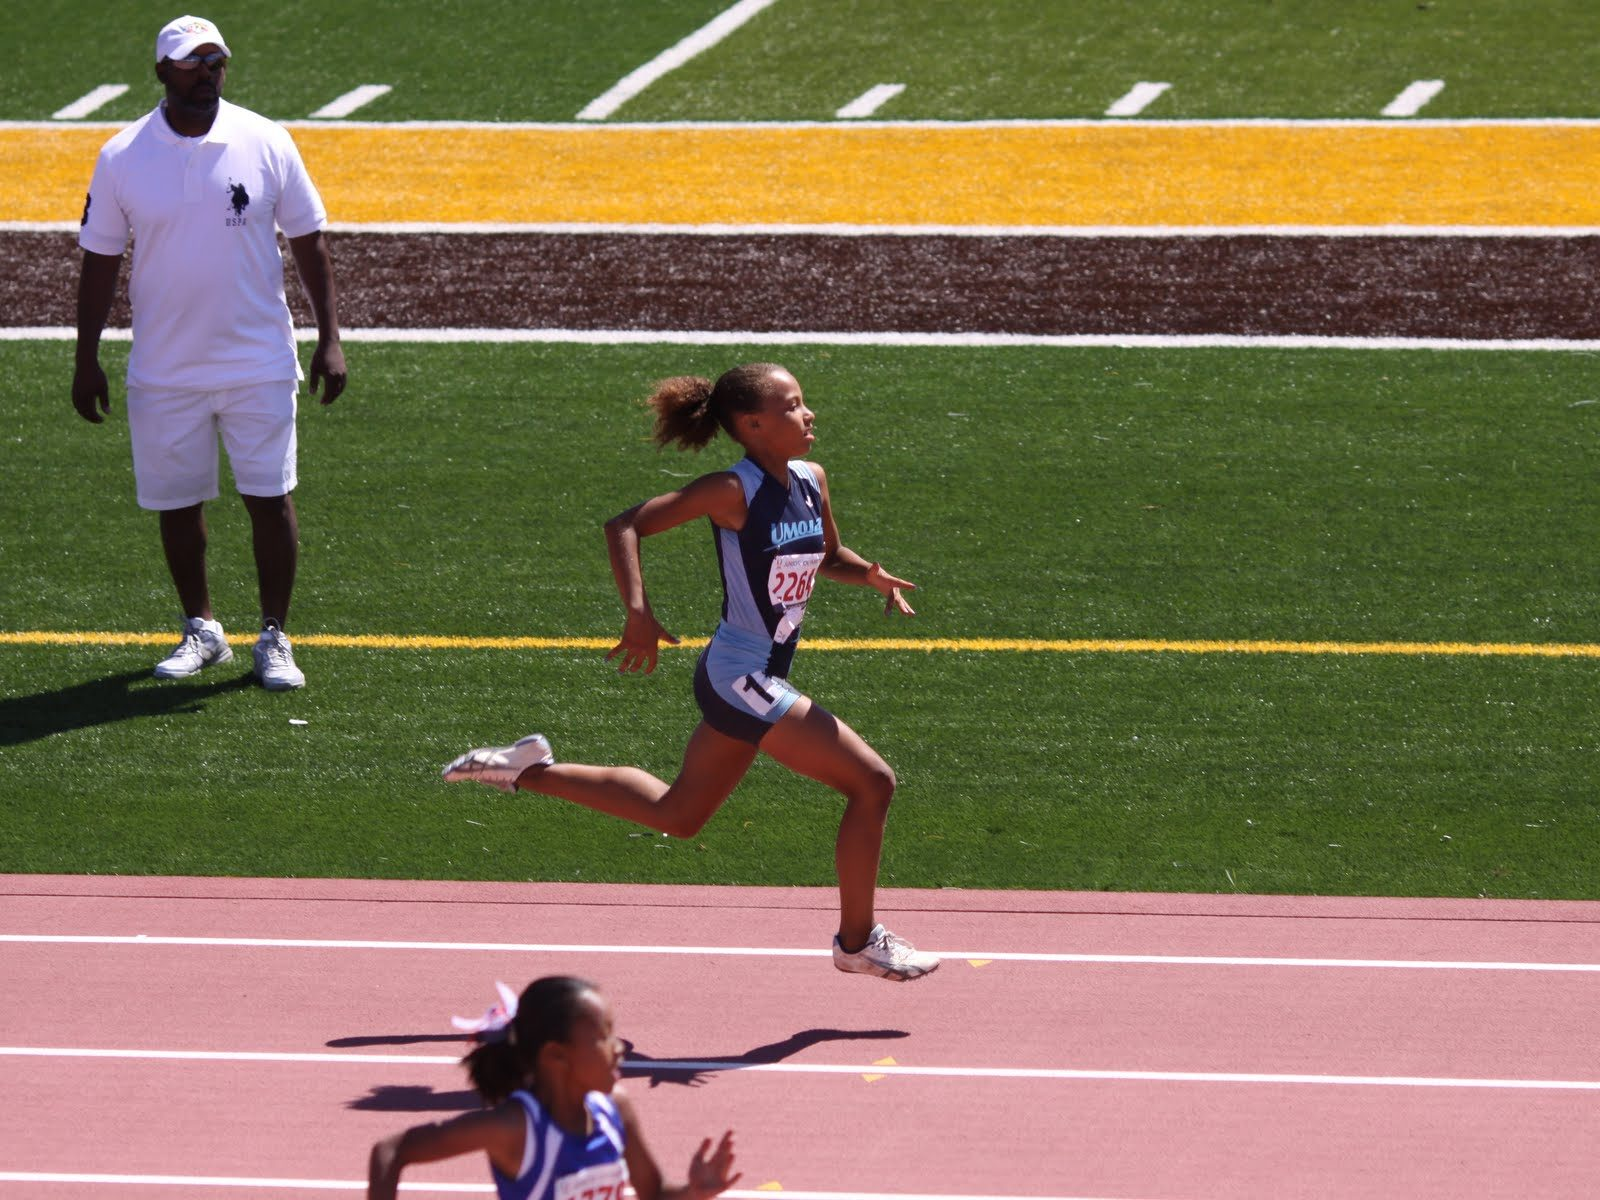 A girl is running on a track.